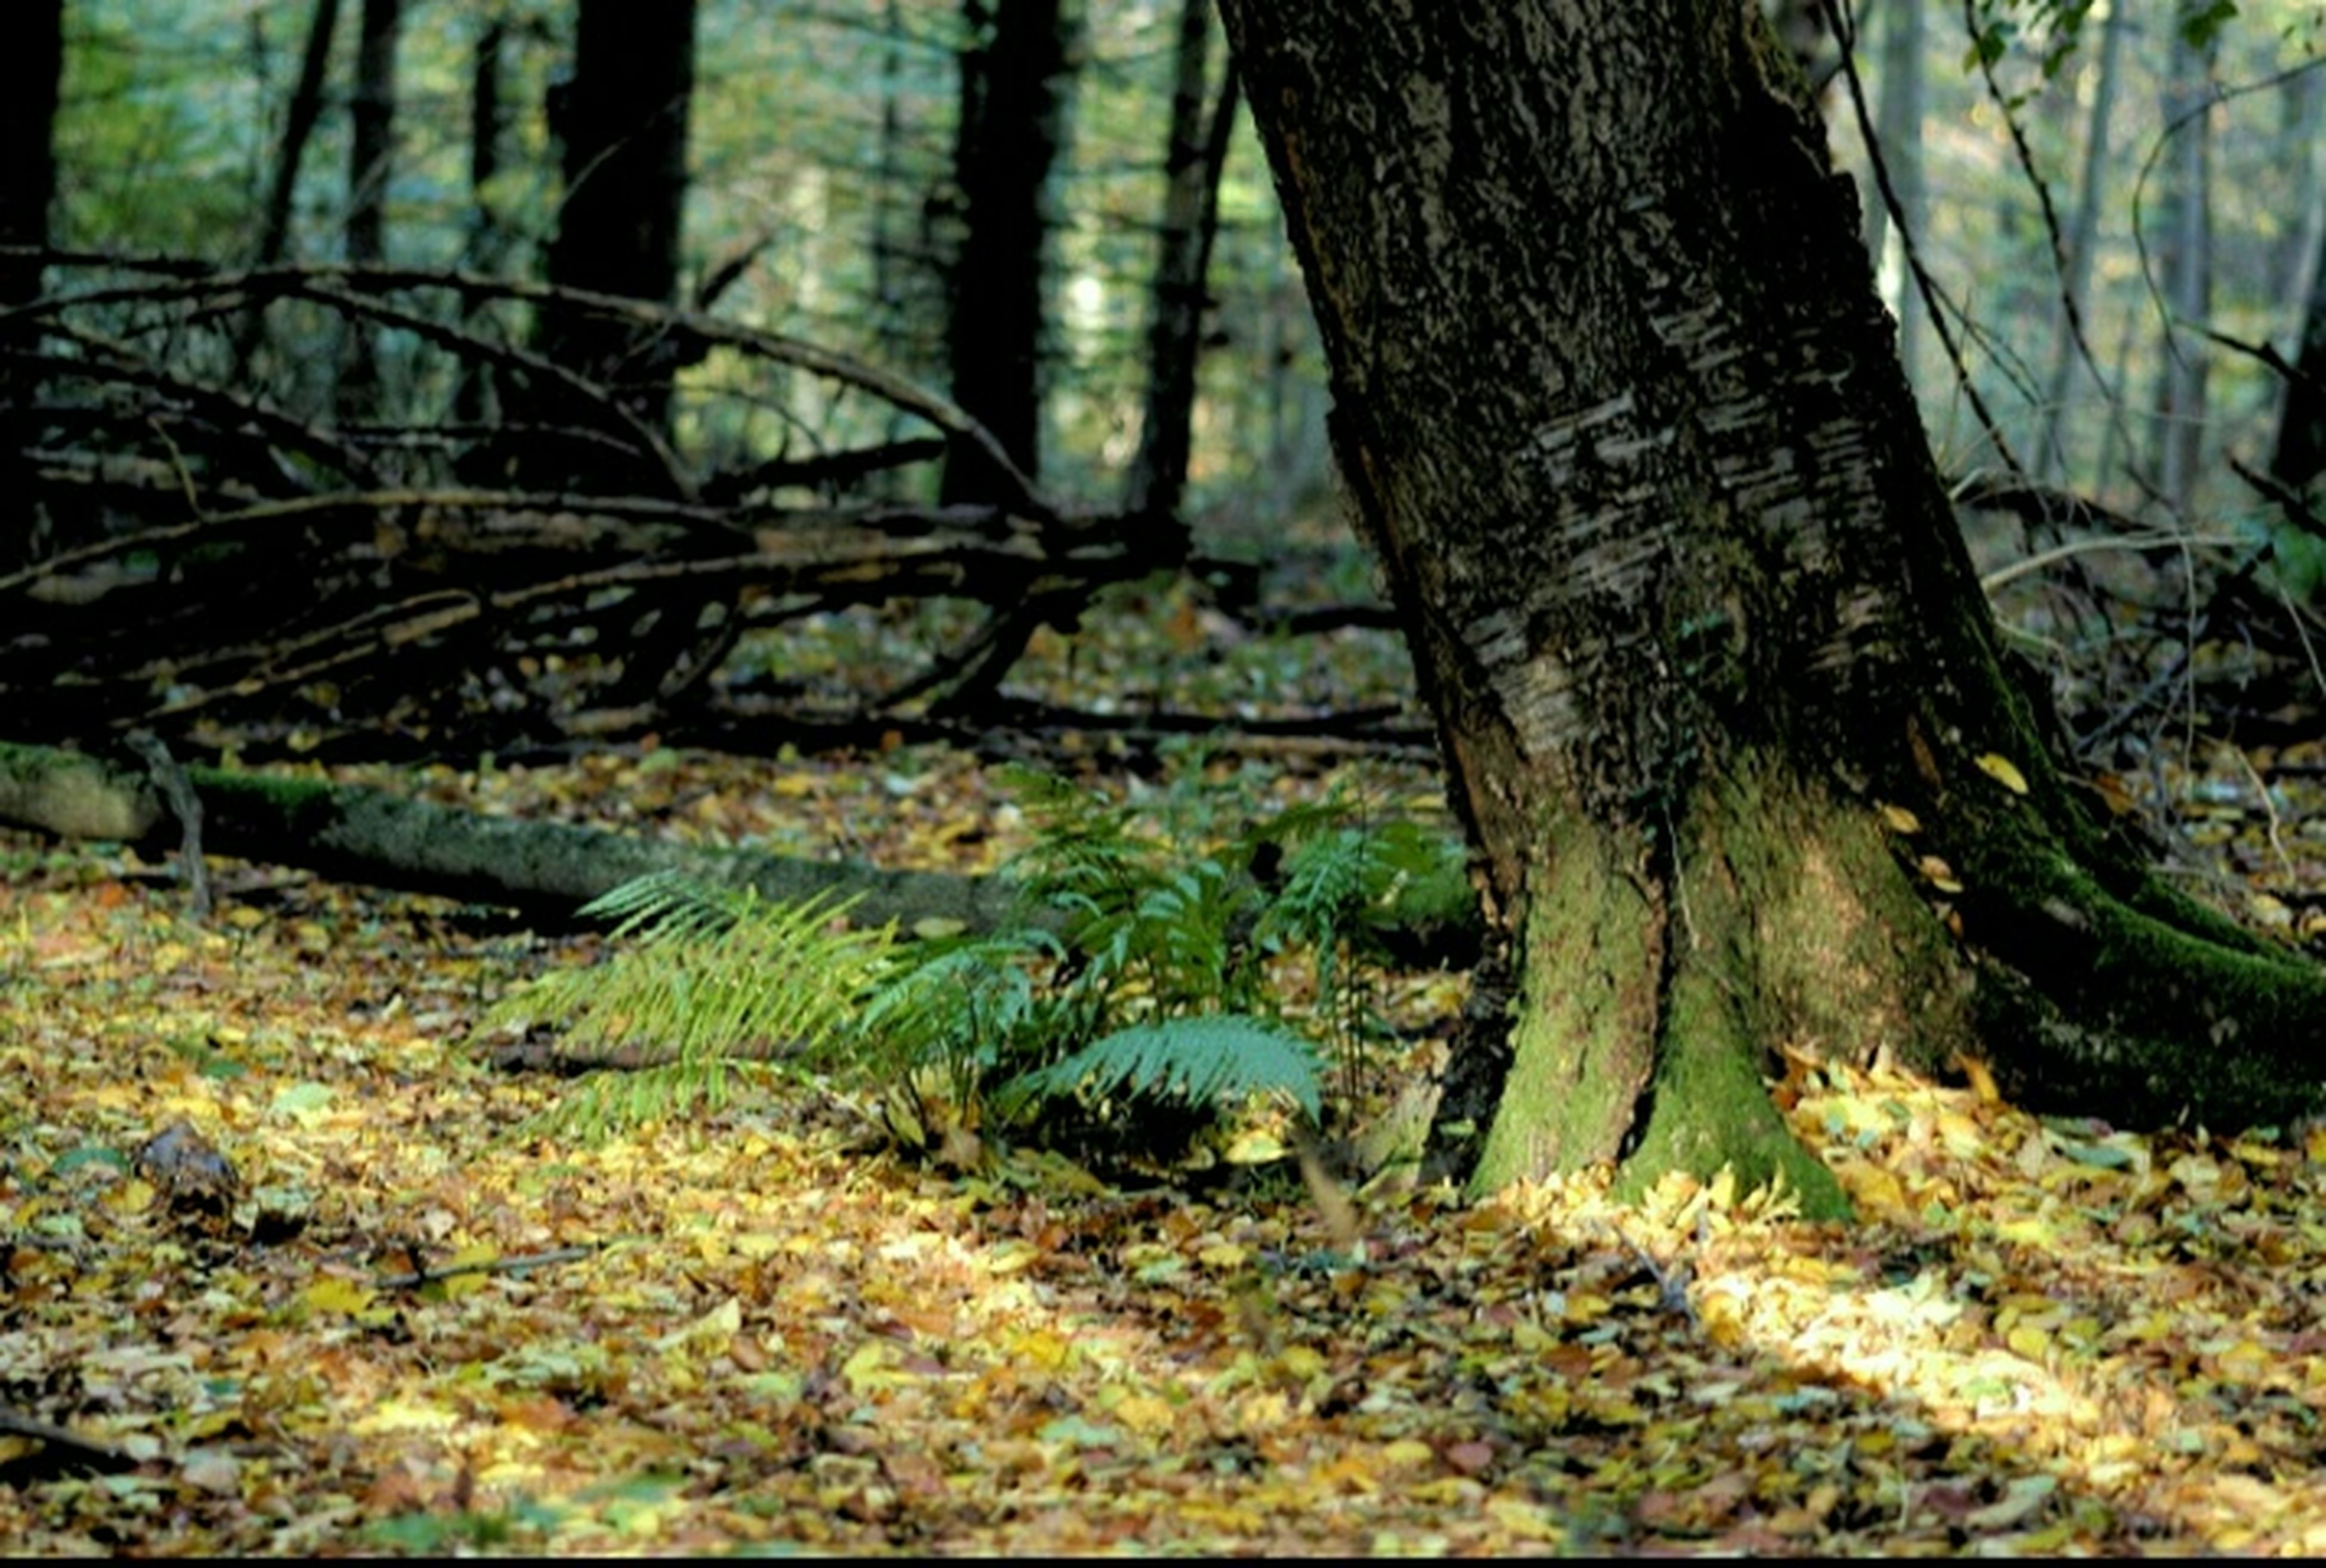 tree trunk, forest, tree, tranquility, nature, tranquil scene, growth, woodland, beauty in nature, scenics, stream, branch, non-urban scene, moss, day, landscape, outdoors, no people, plant, grass